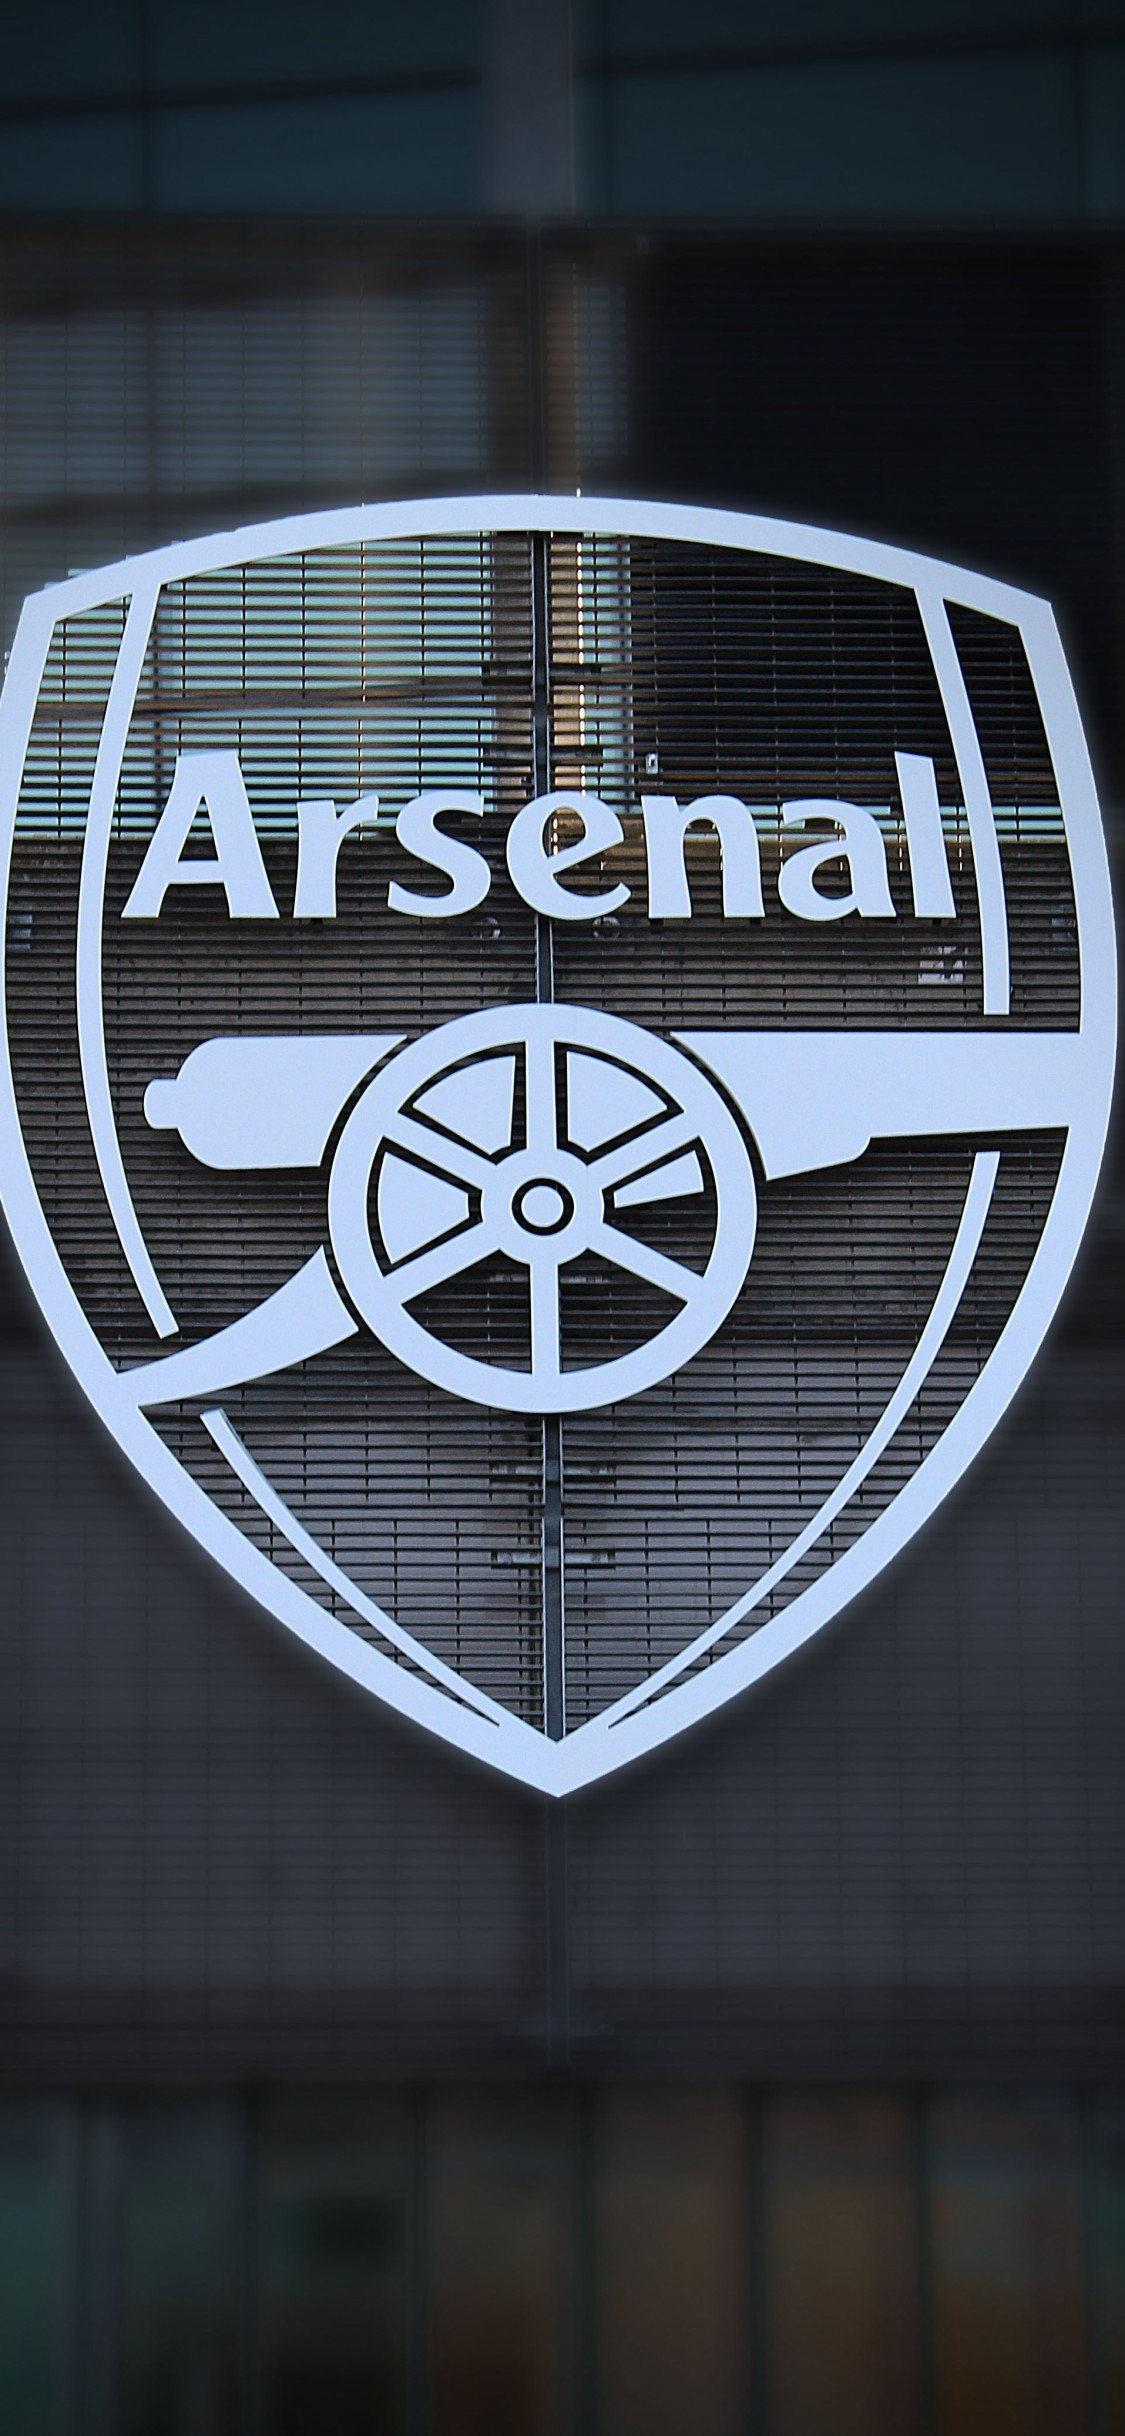 Arsenal Fc Wallpaper Hd Posted By John Simpson